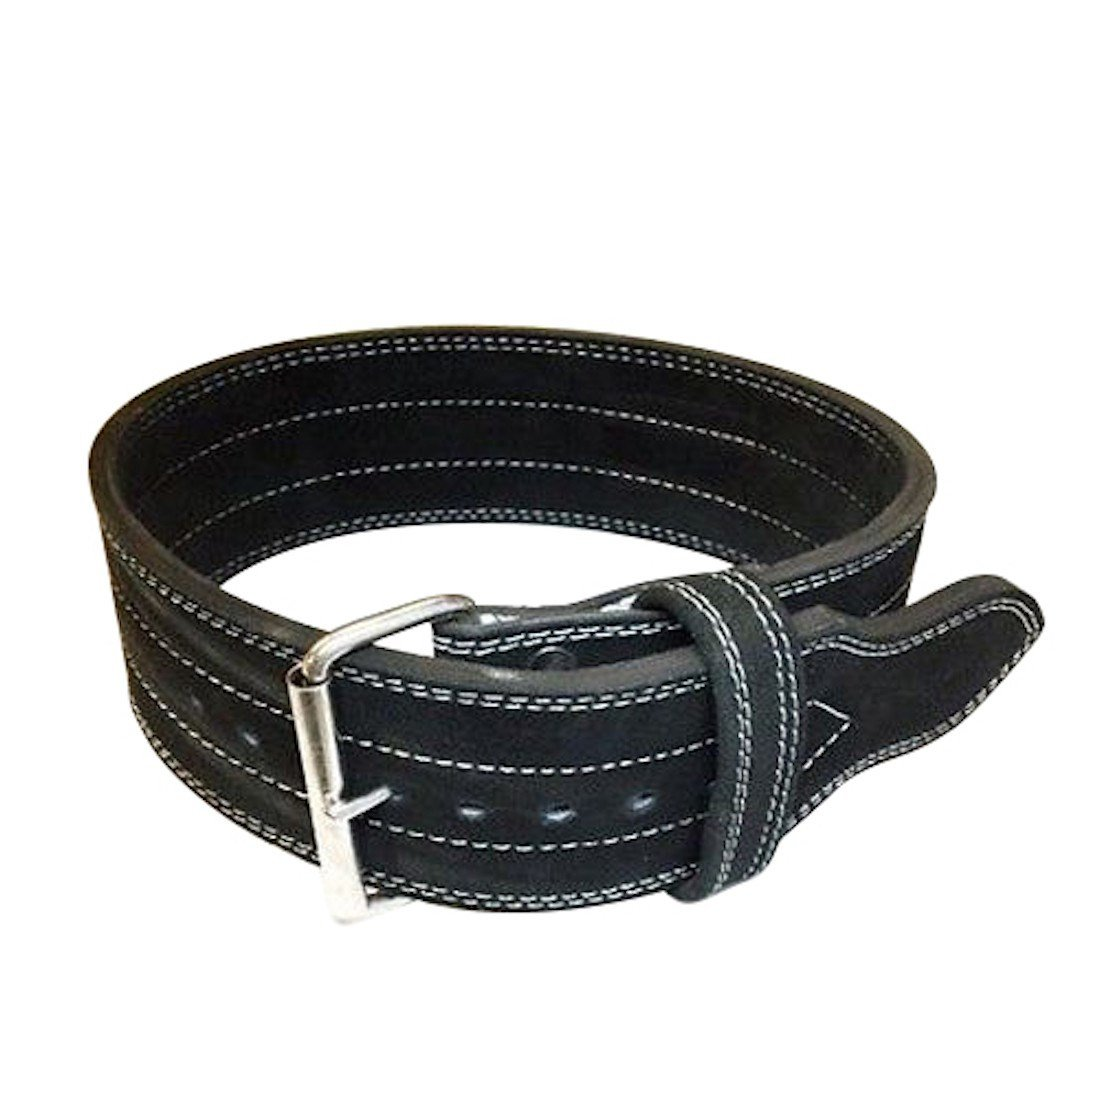 Flexz Fitness Single Prong Closure Powerlifting and Weightlifting Belt, 10mm, Black, Size Large